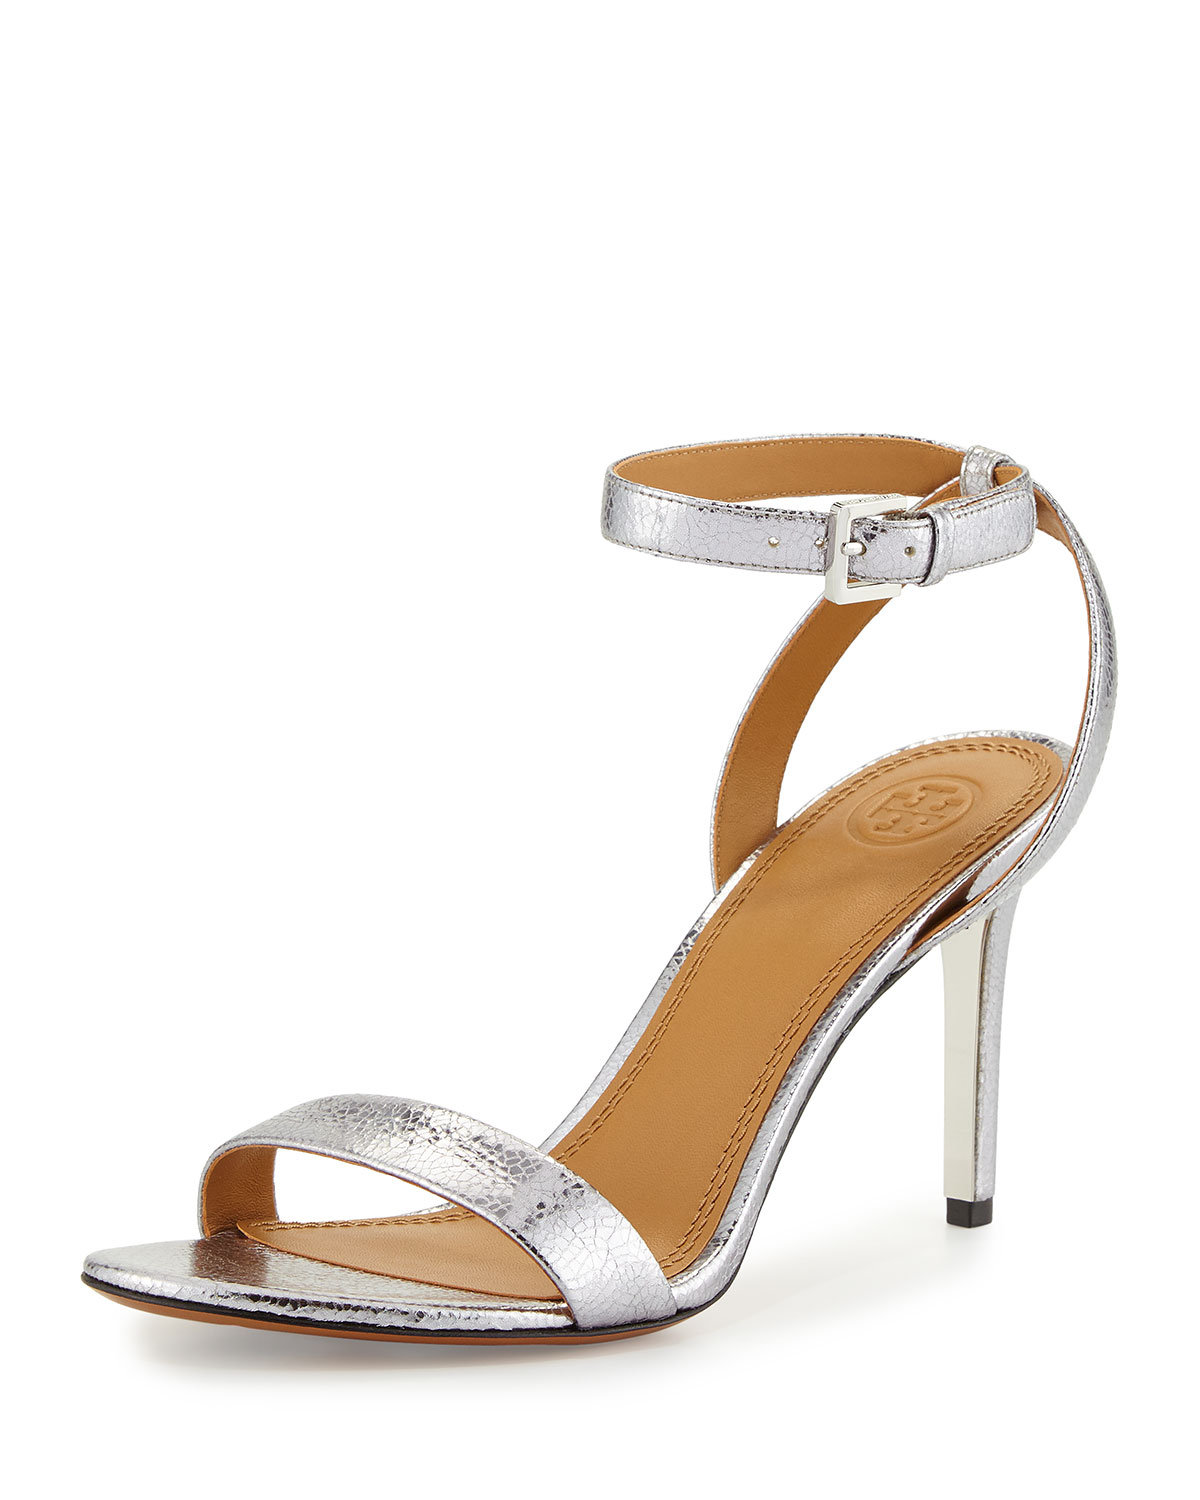 6eb99fbce04e5b Tory Burch Elana Metallic 85mm Sandal